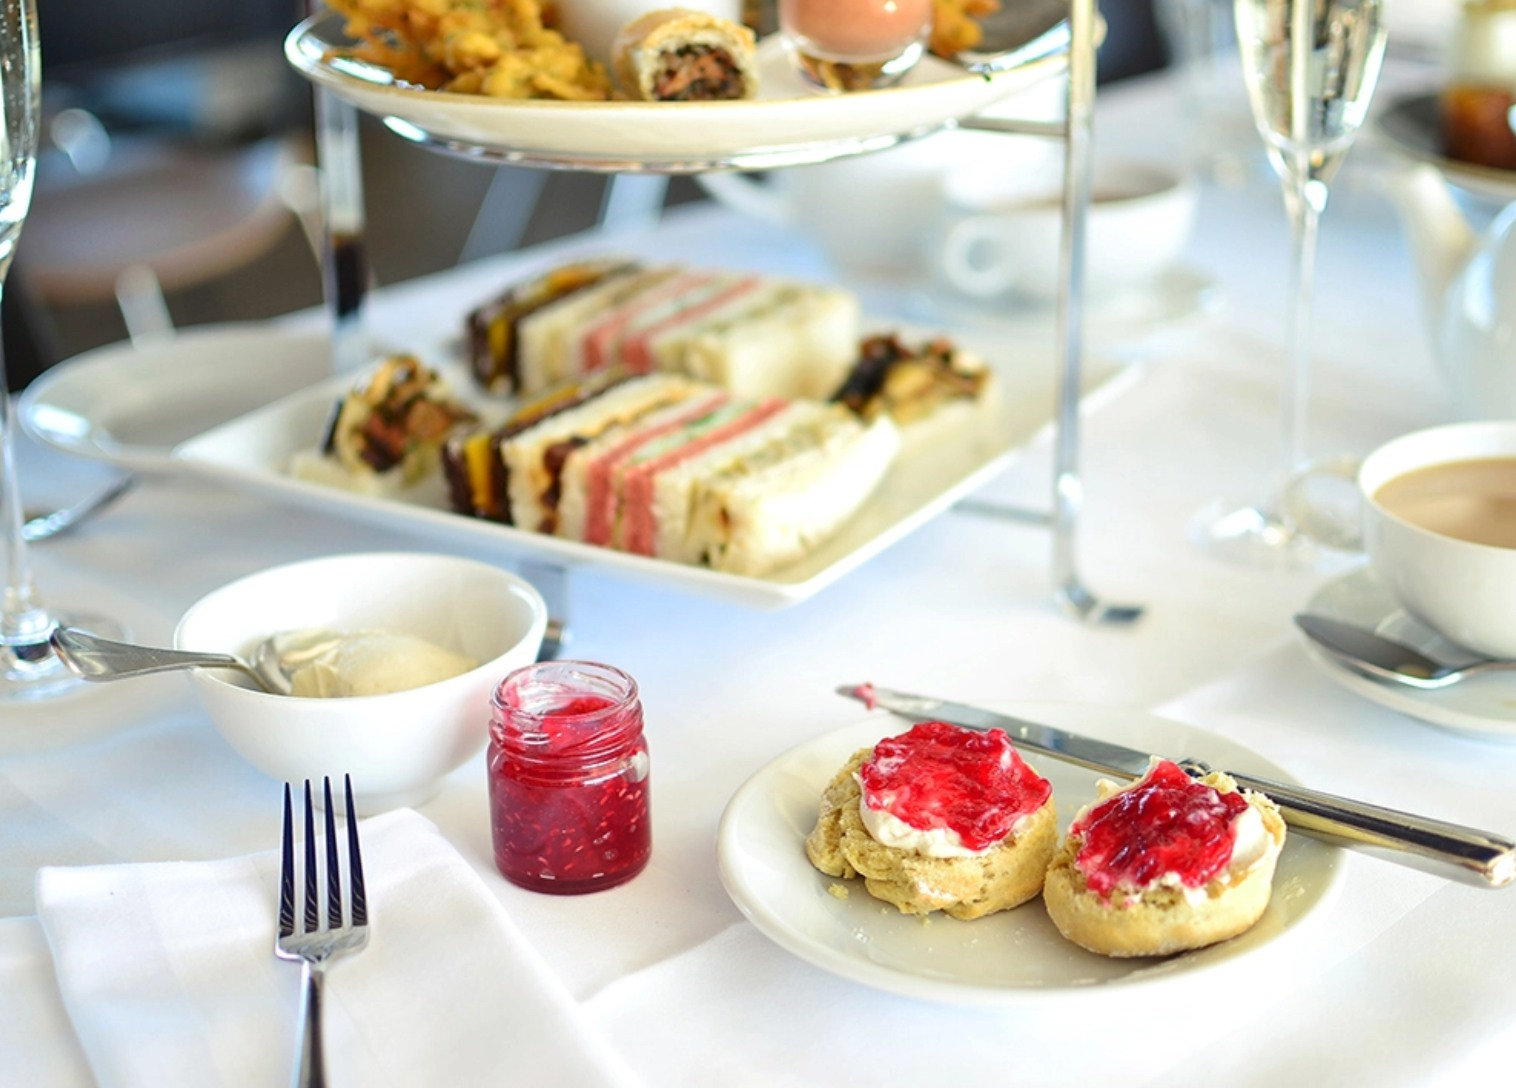 Vegan afternoon tea at the OXO Tower restaurant